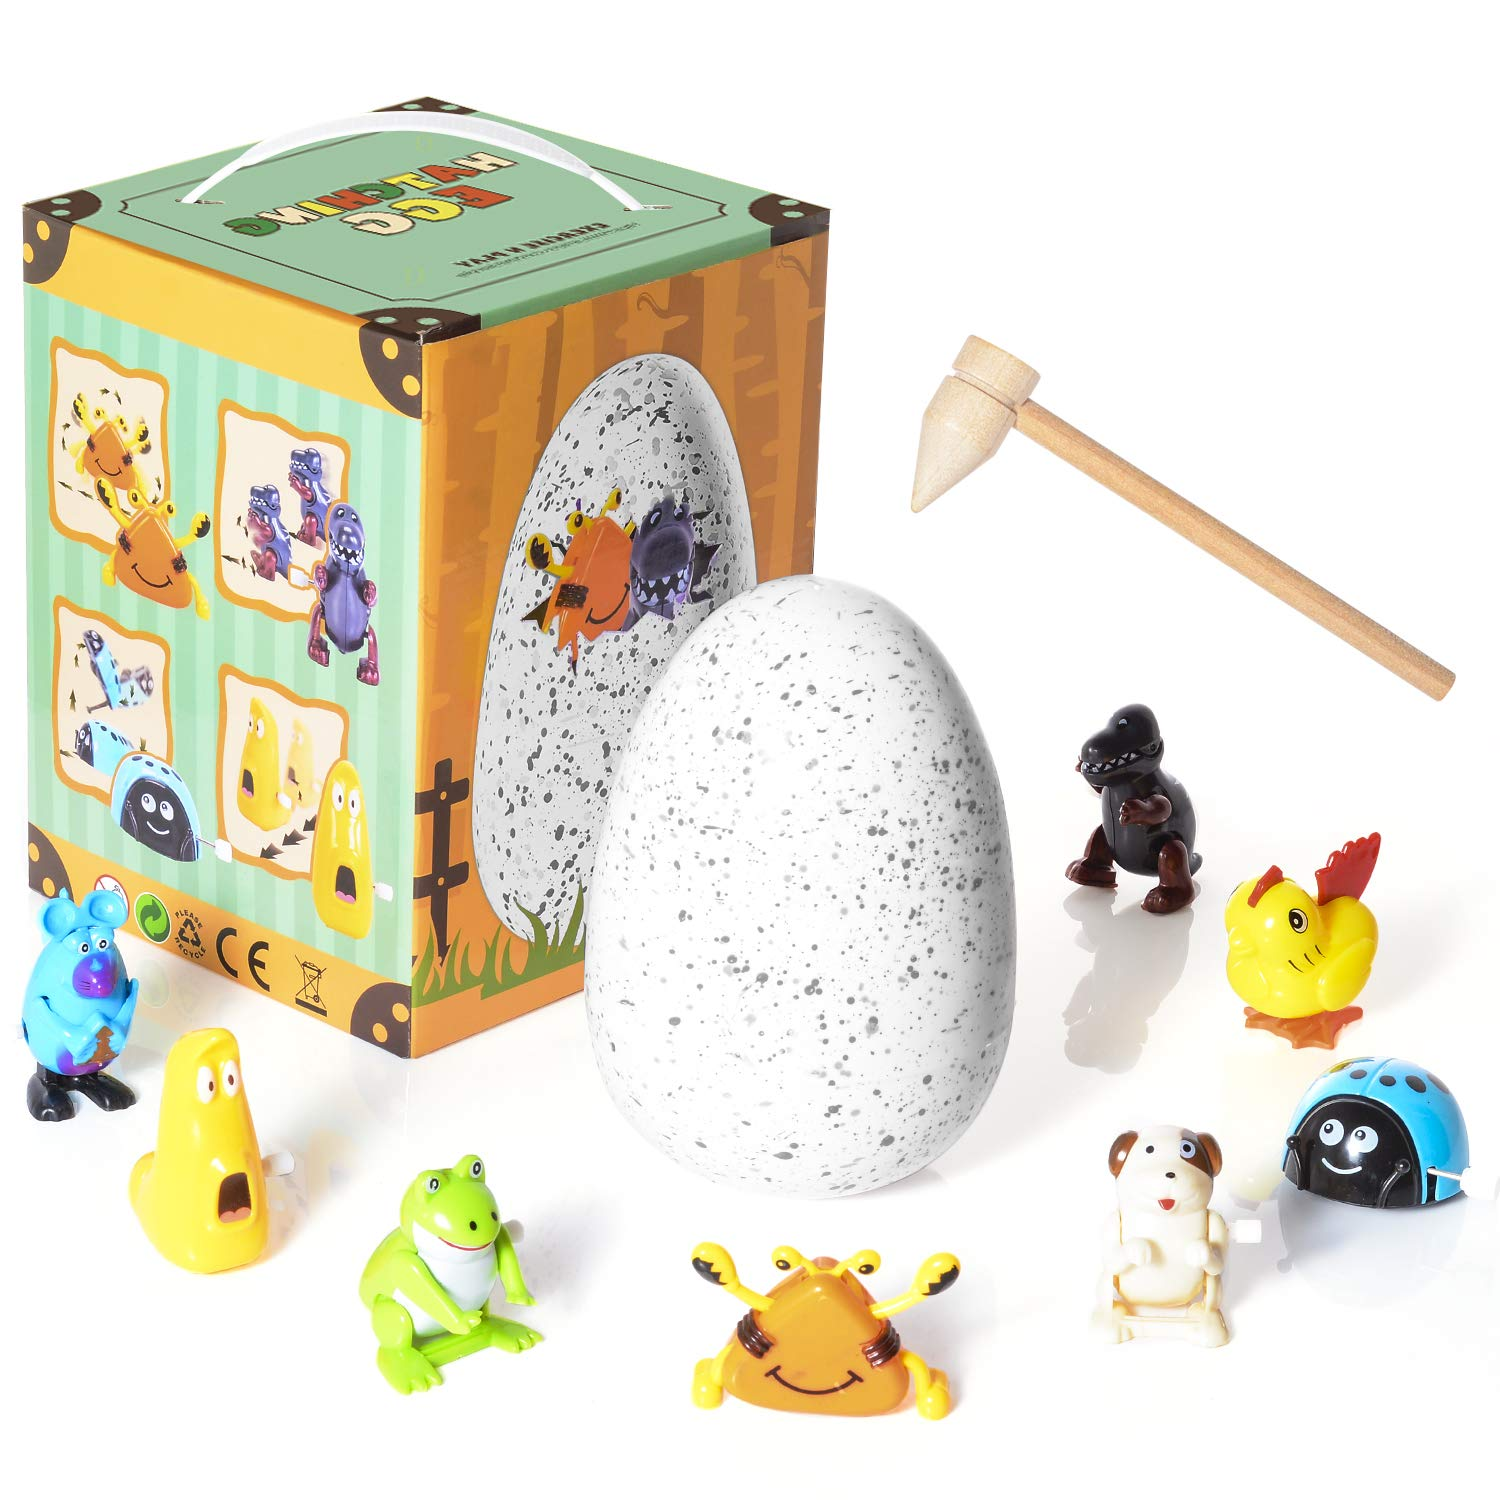 WishaLife Hatchimal Surprise Hatching Egg - Set of 8 Wind Up Animals Toys for Kids Birthday Gifts Party Favor (Includes Mouse, Dog, Dinosaur, Chick, Frog, Ladybug, Crab, Larva, Wooden Hammer) by WishaLife (Image #6)